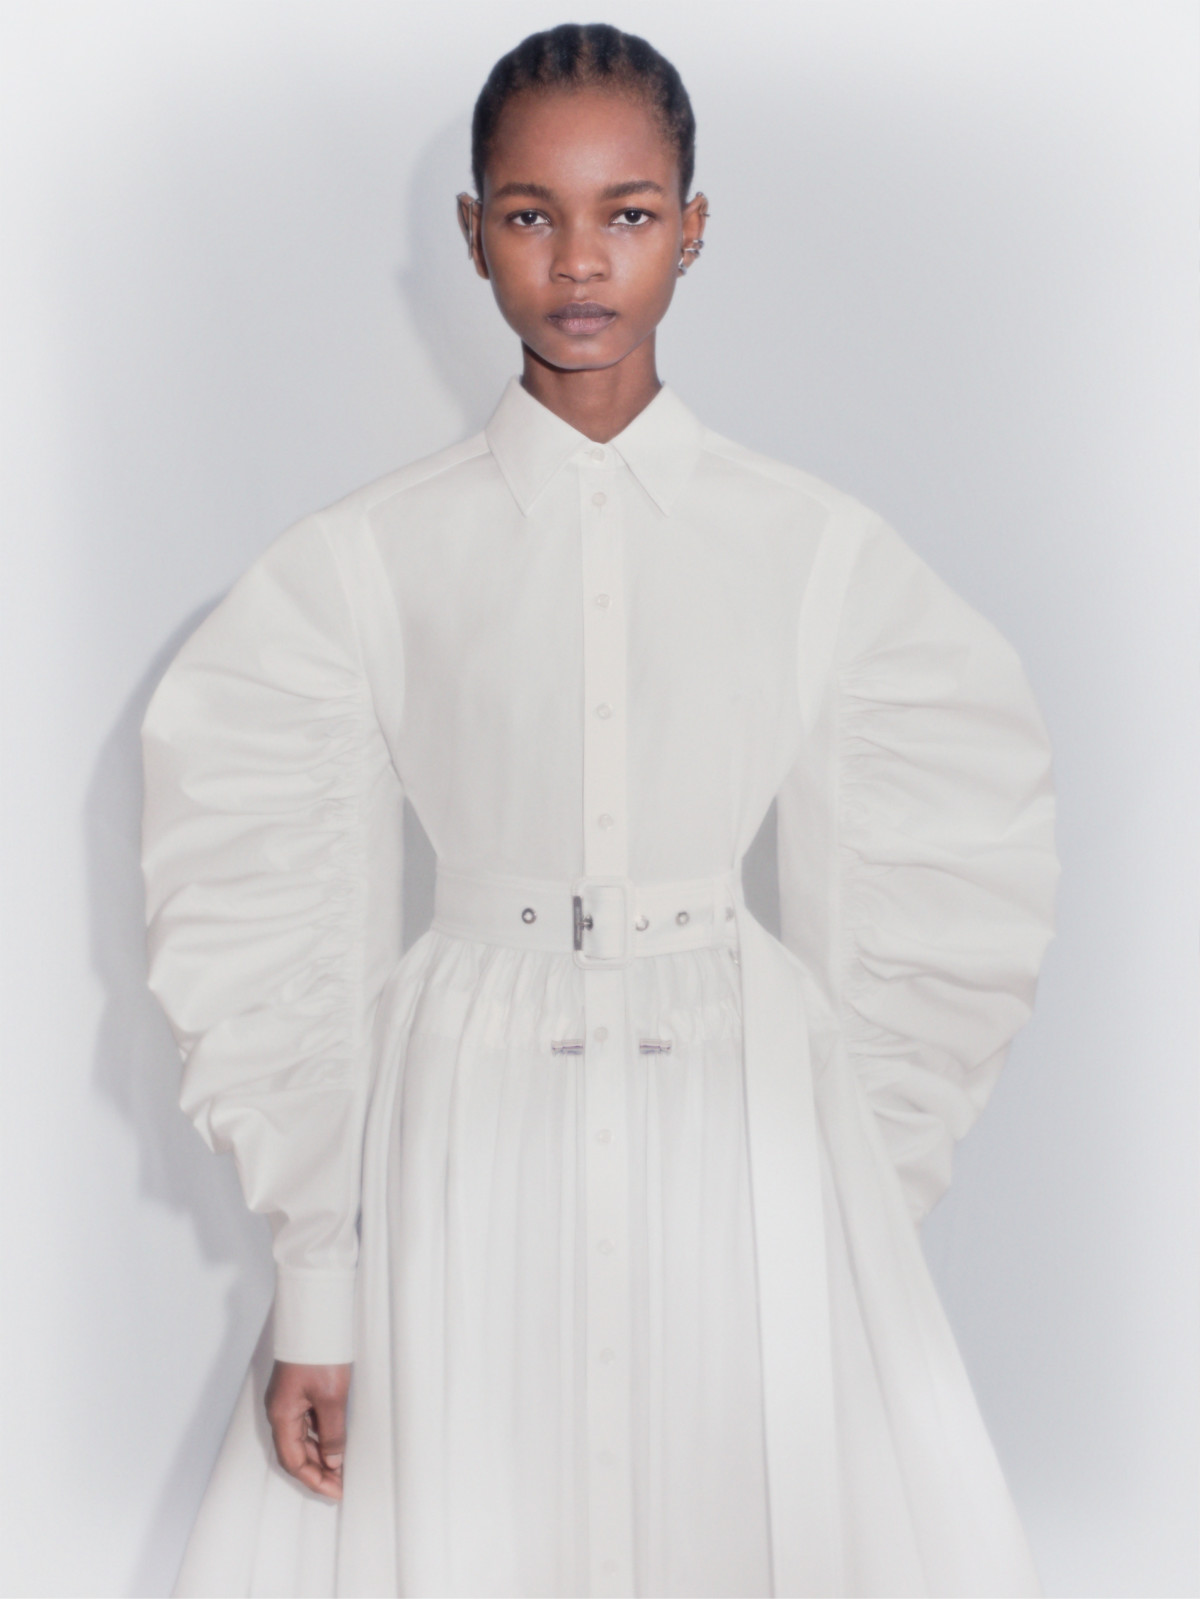 Silhouette In Focus Of Alexander McQueen's Spring/Summer 2021 Womenswear Collection